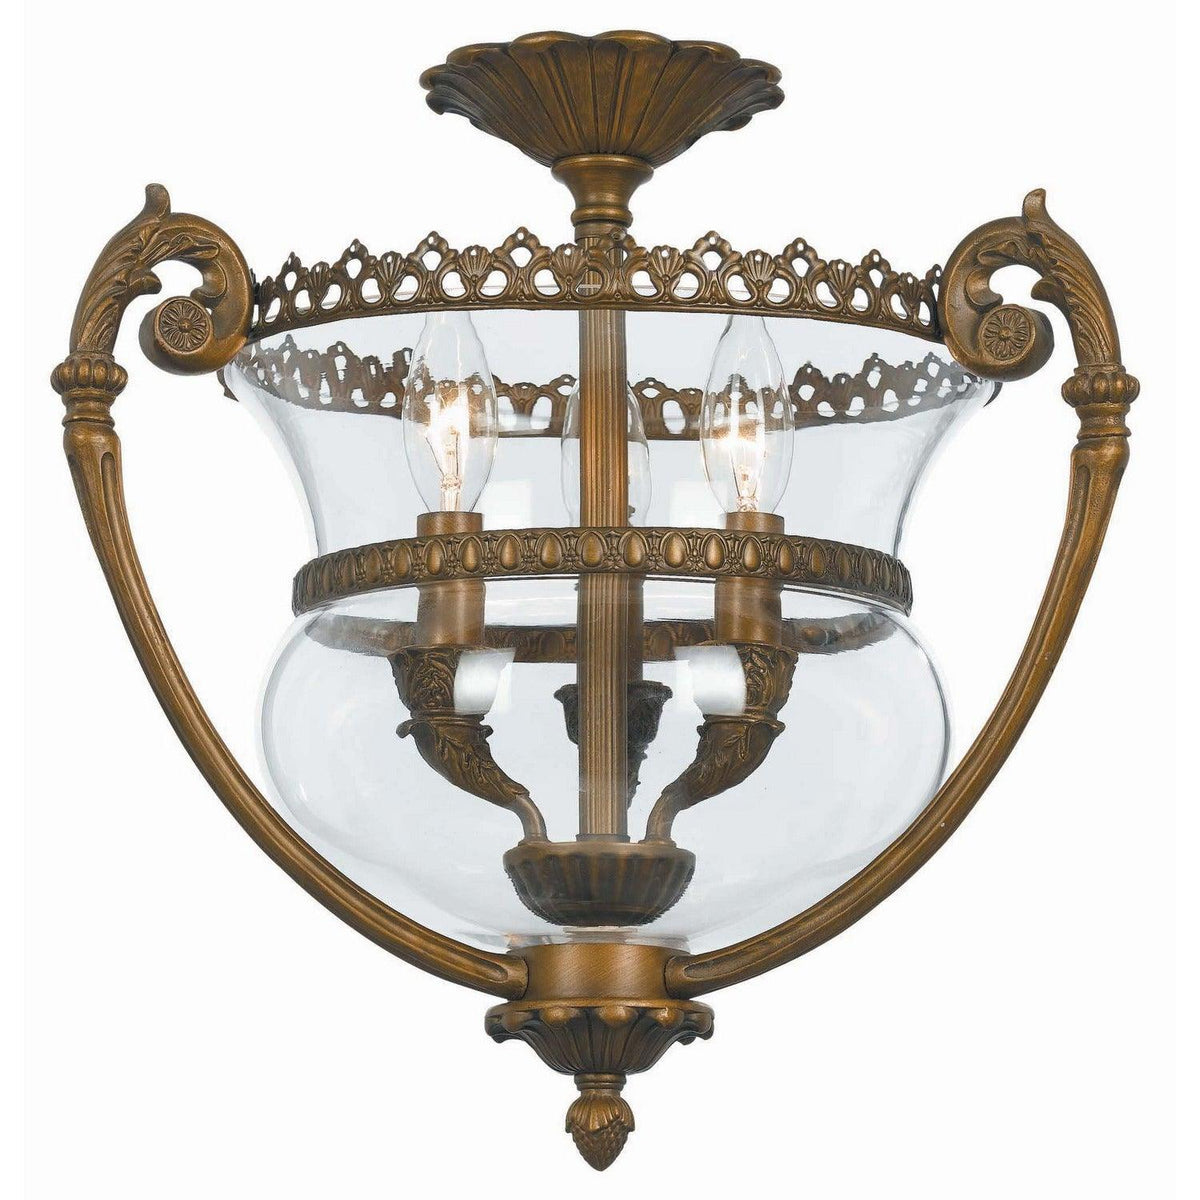 Crystorama - 5791-AB - Three Light Ceiling Mount - Ceiling Mount - Antique Brass